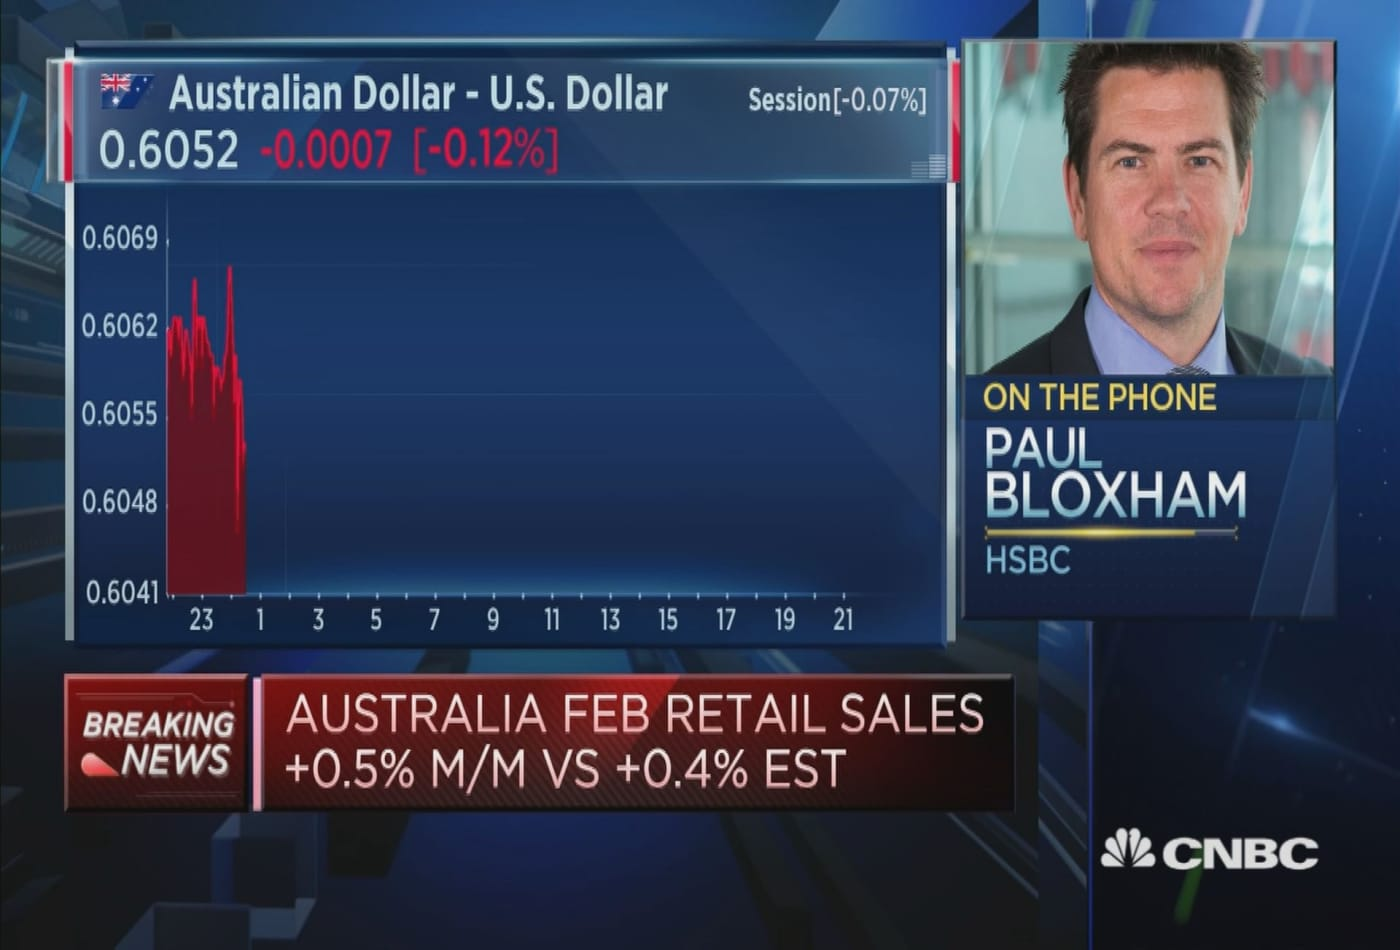 Australia's March services consumption likely to be hit hard: HSBC